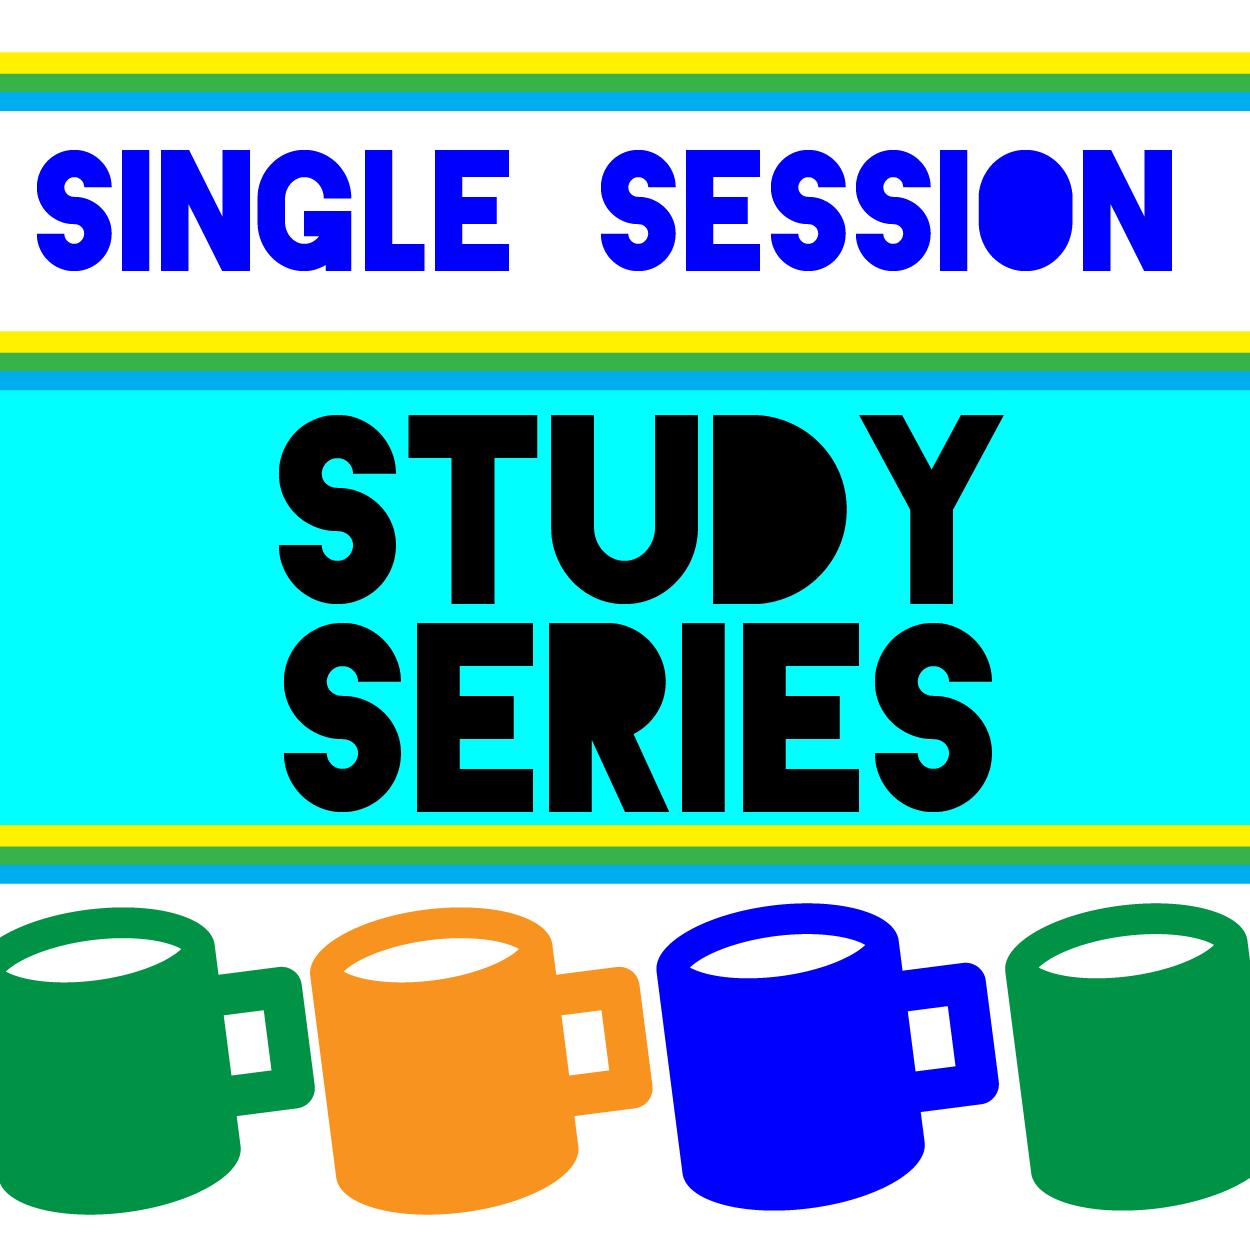 Study Series Session: Making Assessments More Meaningful: Rubrics, Roundtables, and Real Reflection – Chantal Francois and Elizabeth Lacy